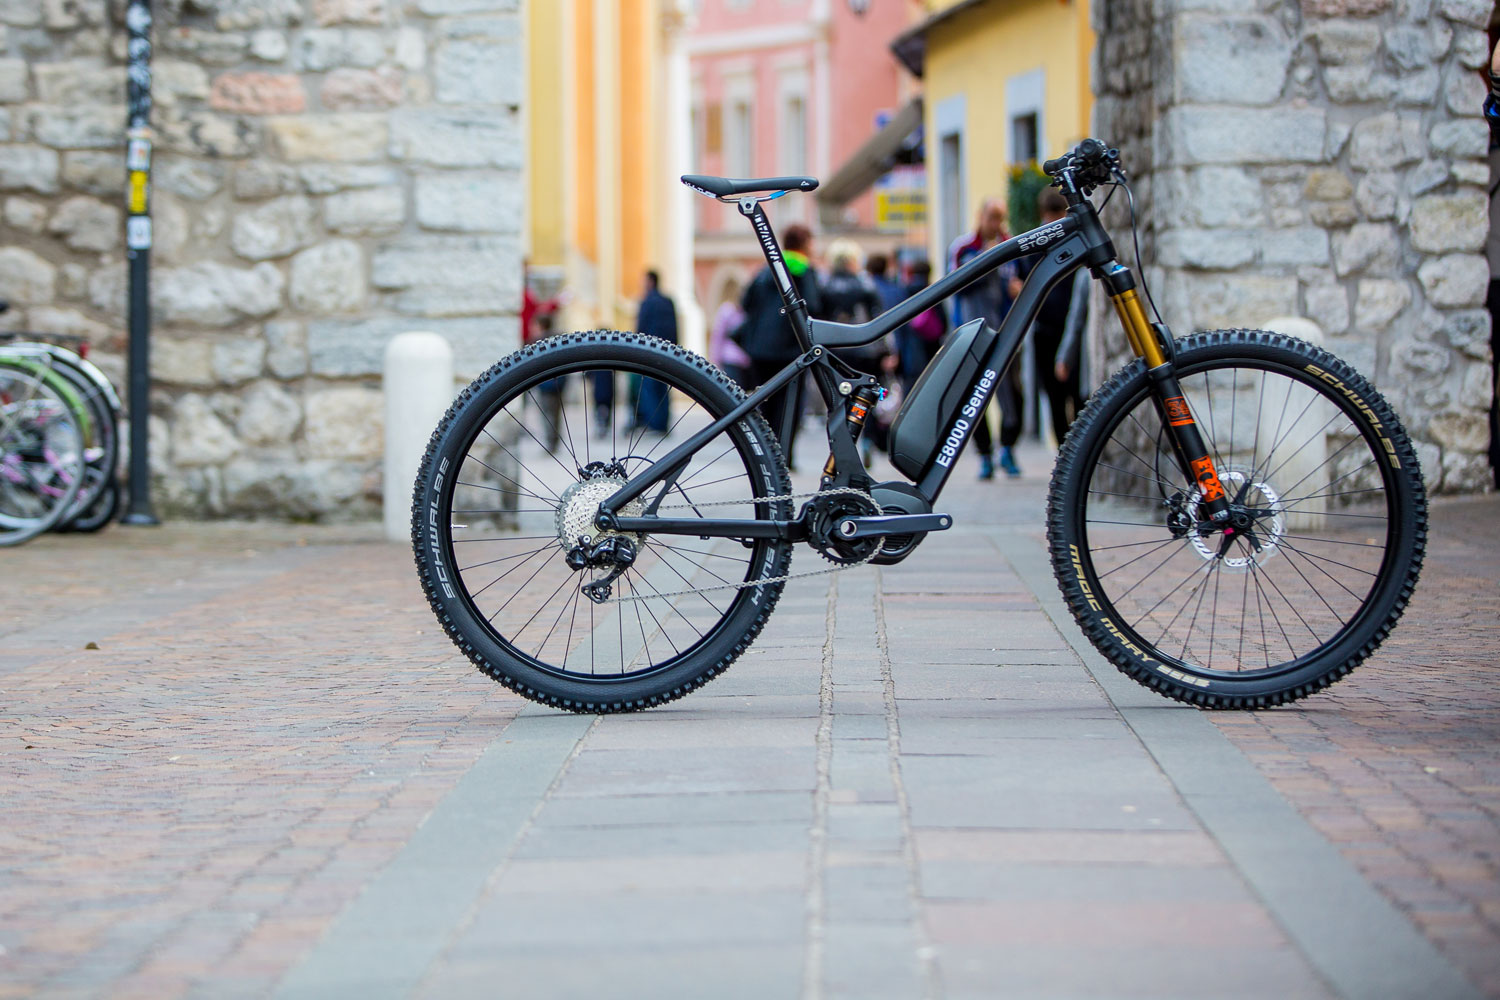 Shimano Shows E8000 Electric Assist Motor For Mountain